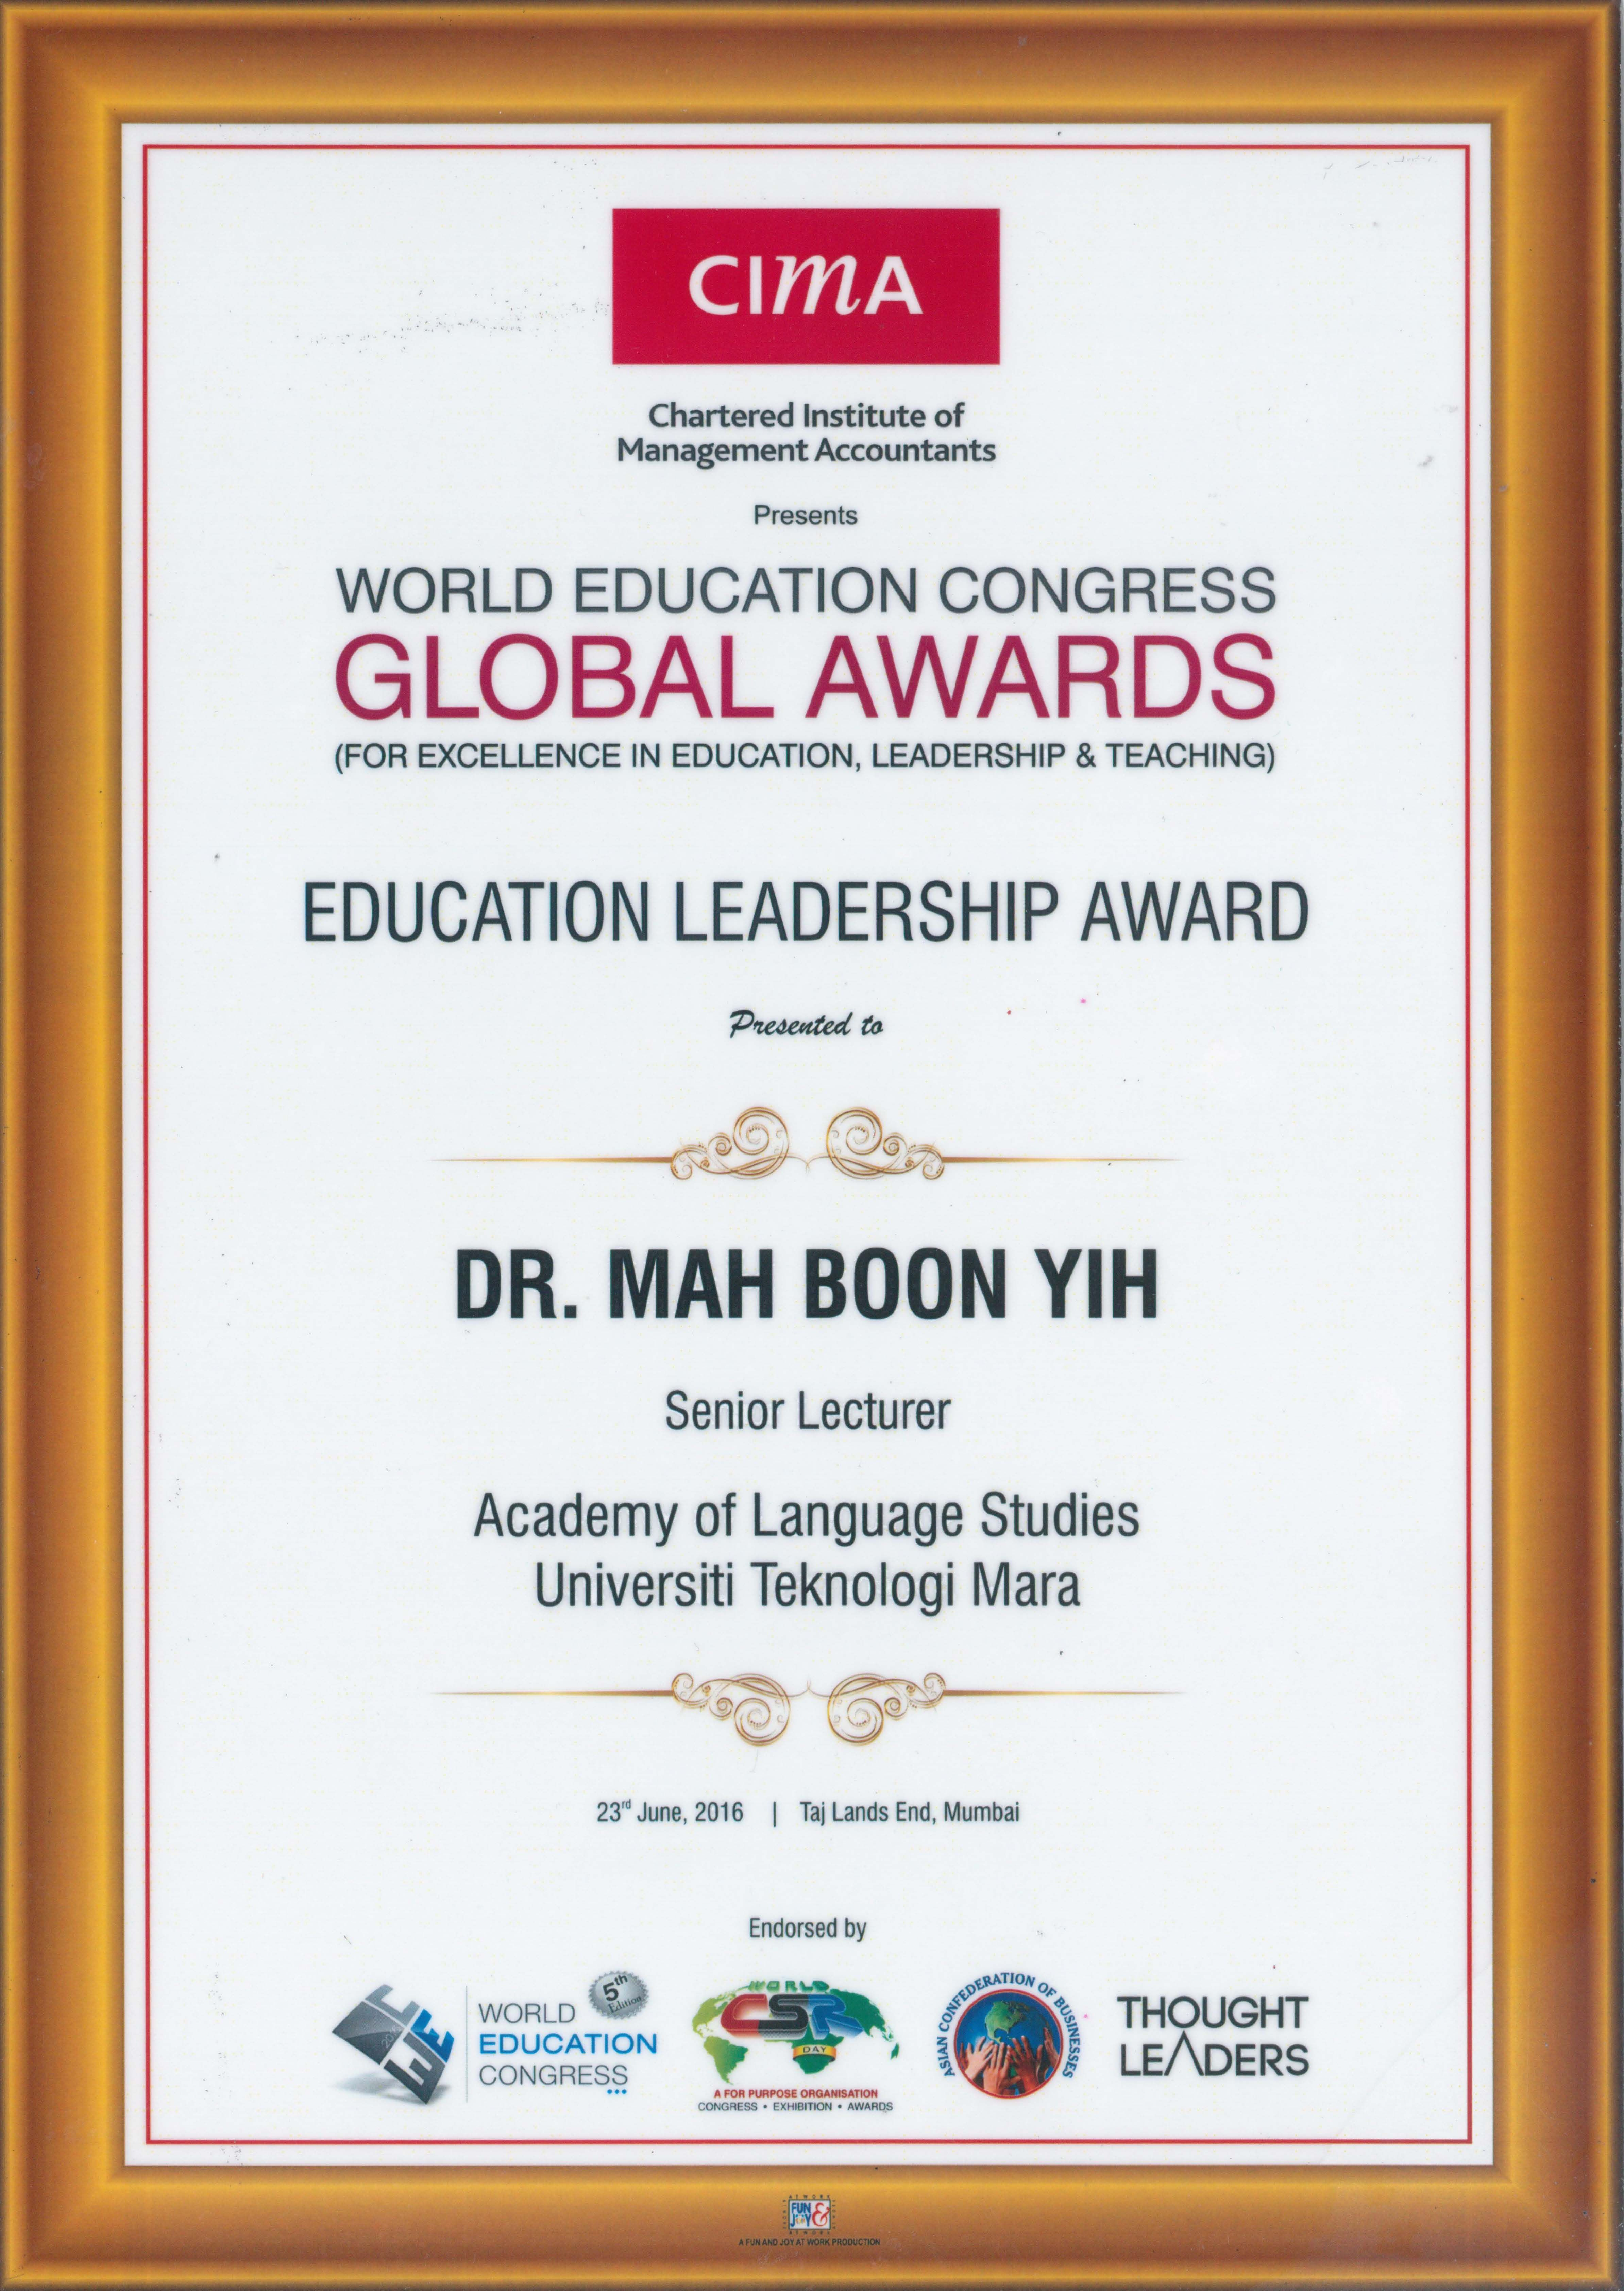 World education congress global awards for excellence in education leadership teaching